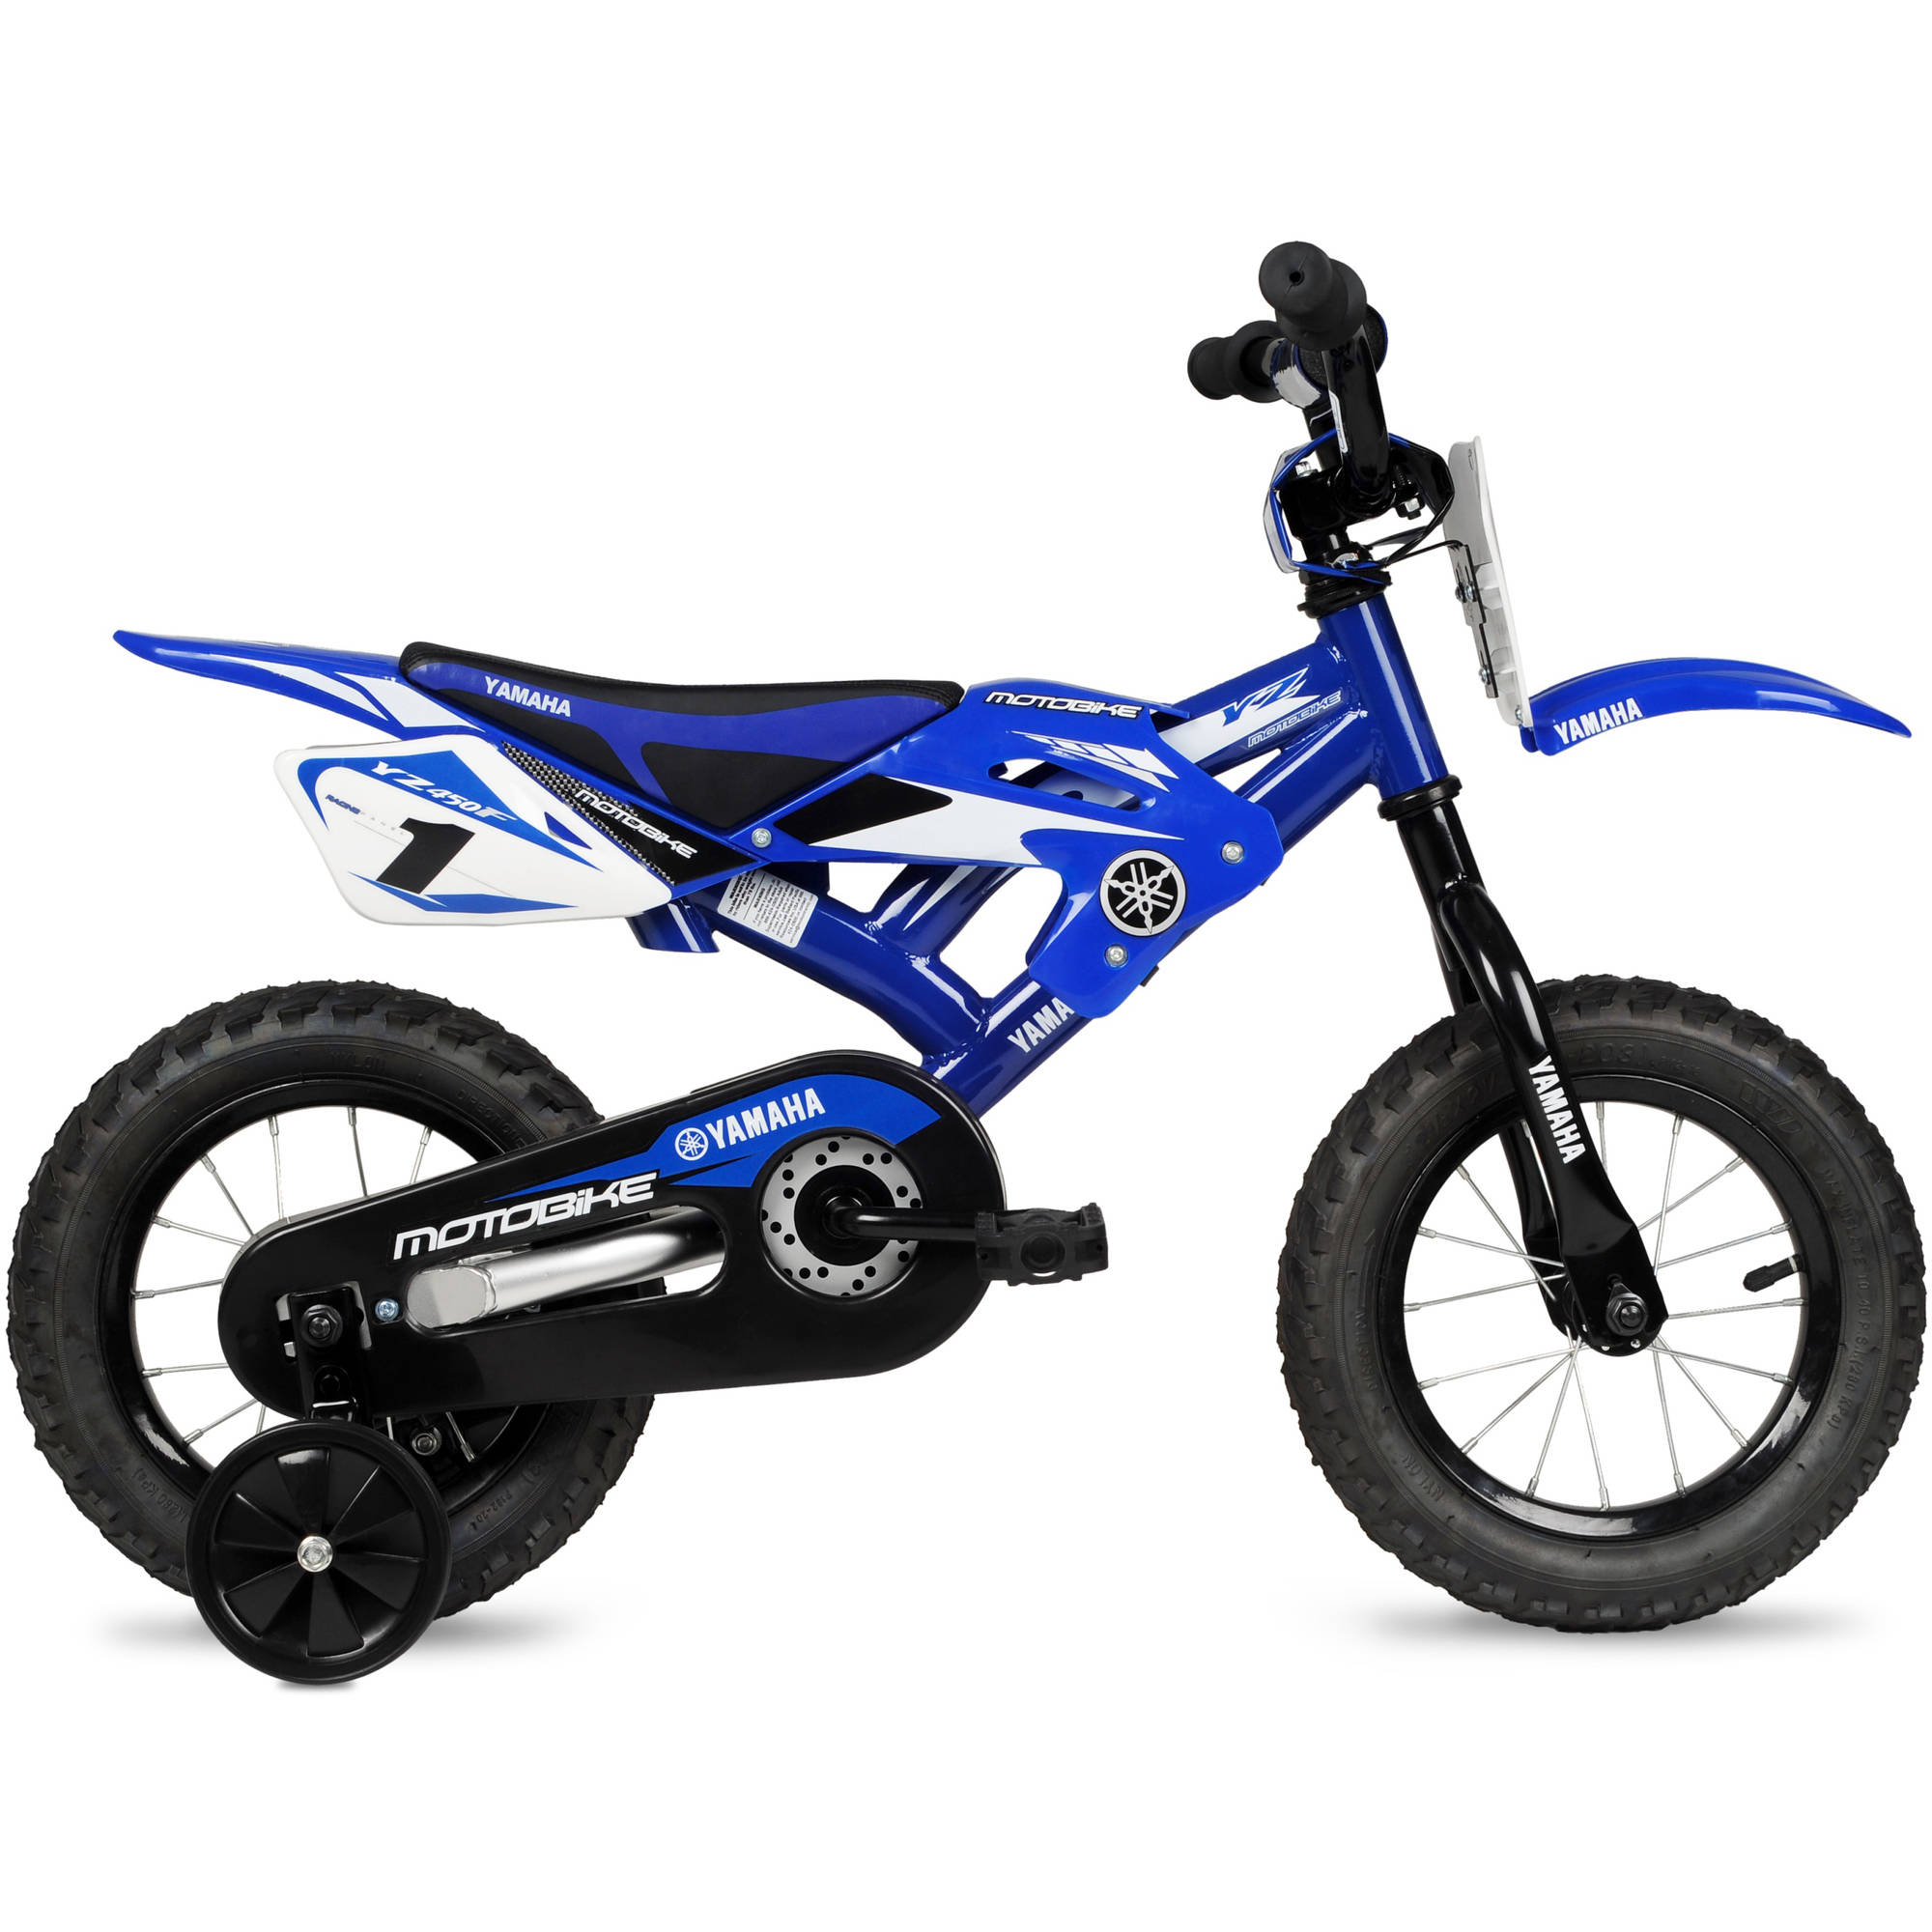 Bmx Bikes For Kids >> Details About Boys Kids Bike Yamaha Moto Childs Bmx 12 Blue 2 4 Wheels Children Bicycle Steel